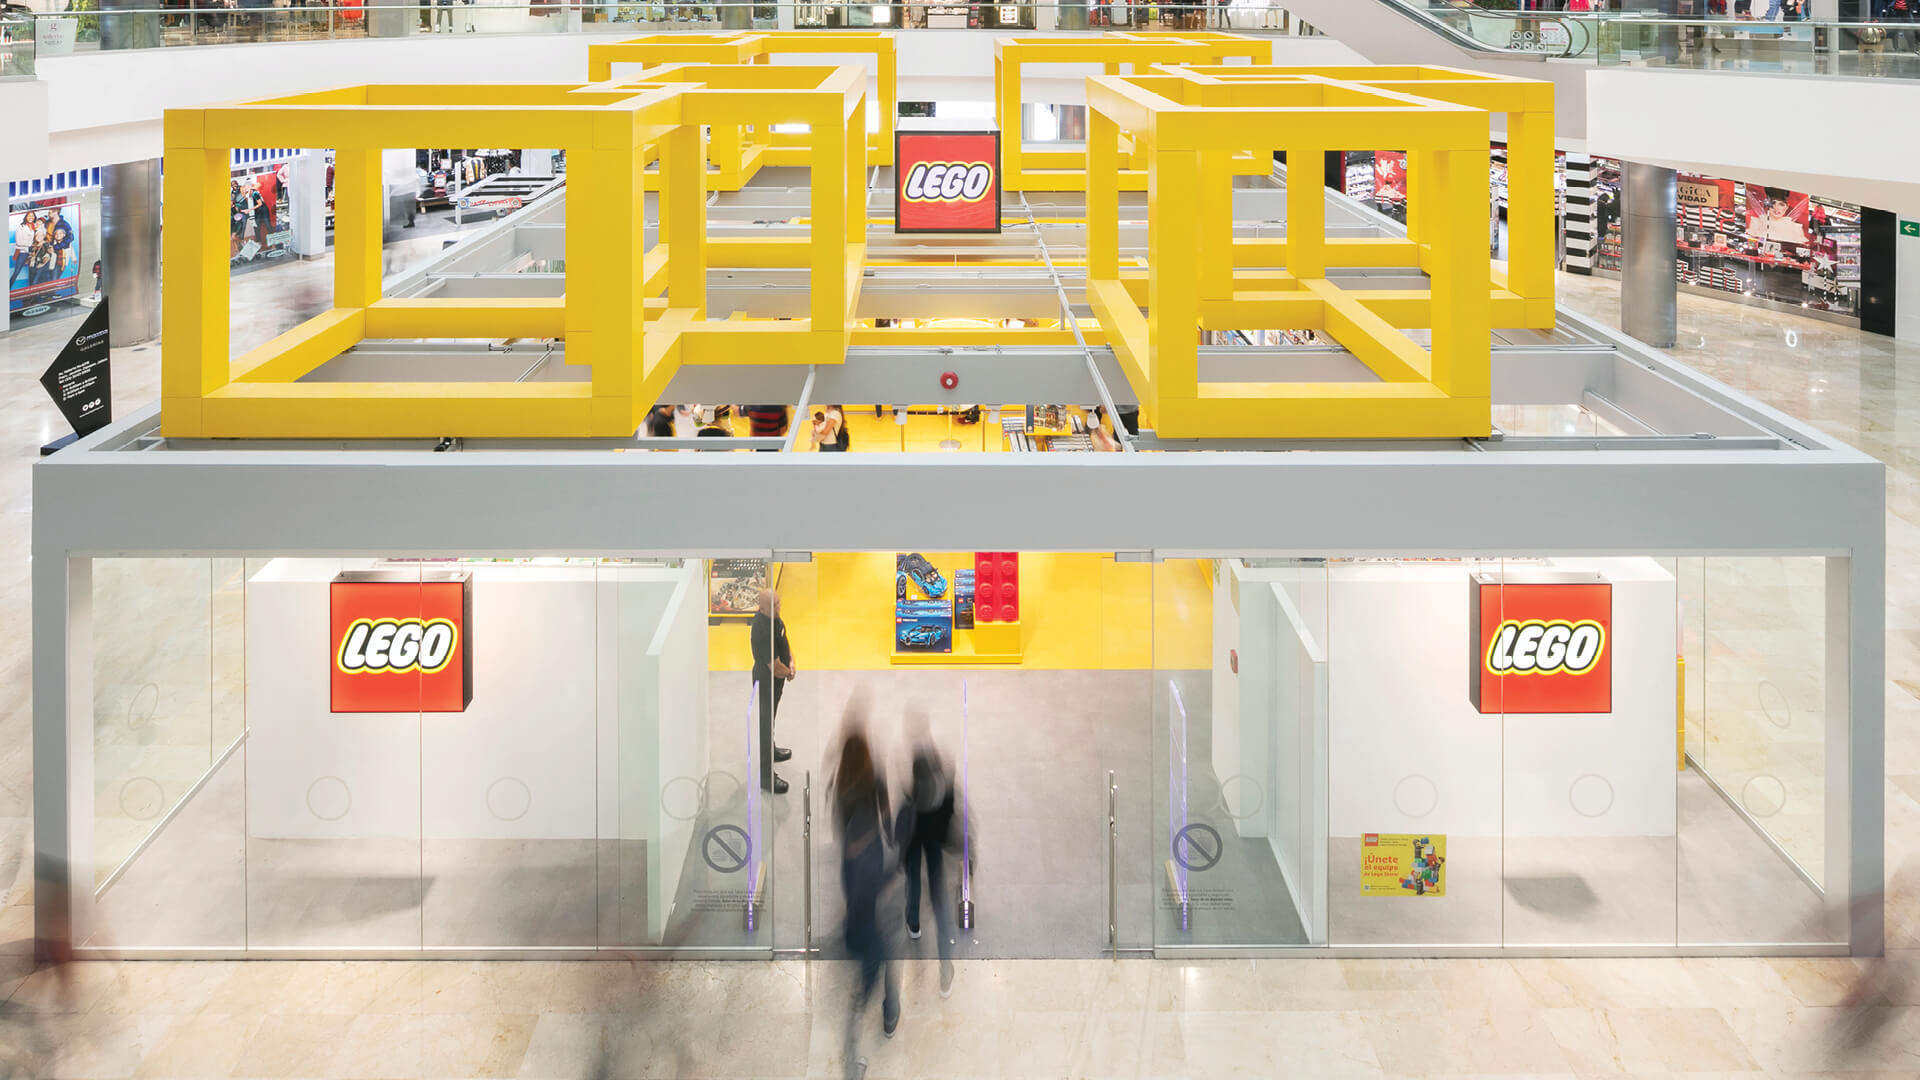 Chain + Siman has designed a colourful LEGO store within a shopping mall in Mexico | LEGO Store, Guadalajara | Chain + Siman Architects | STIRworld